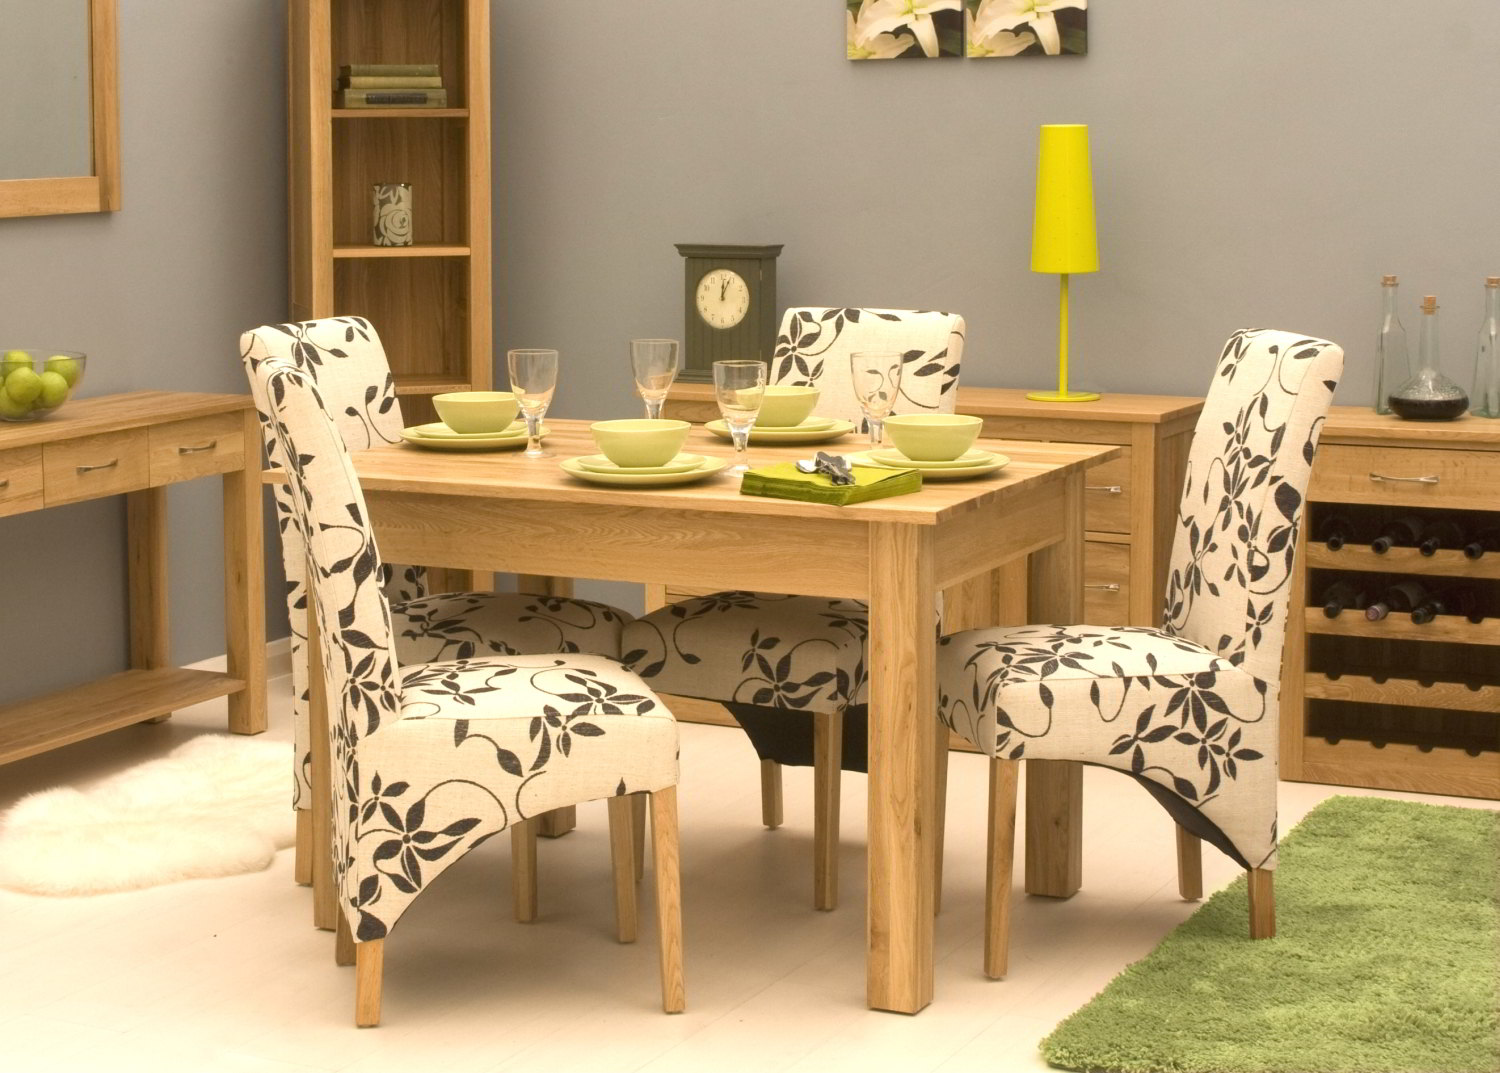 527c4fe219c Details about Conran solid oak modern furniture small four seater dining  table